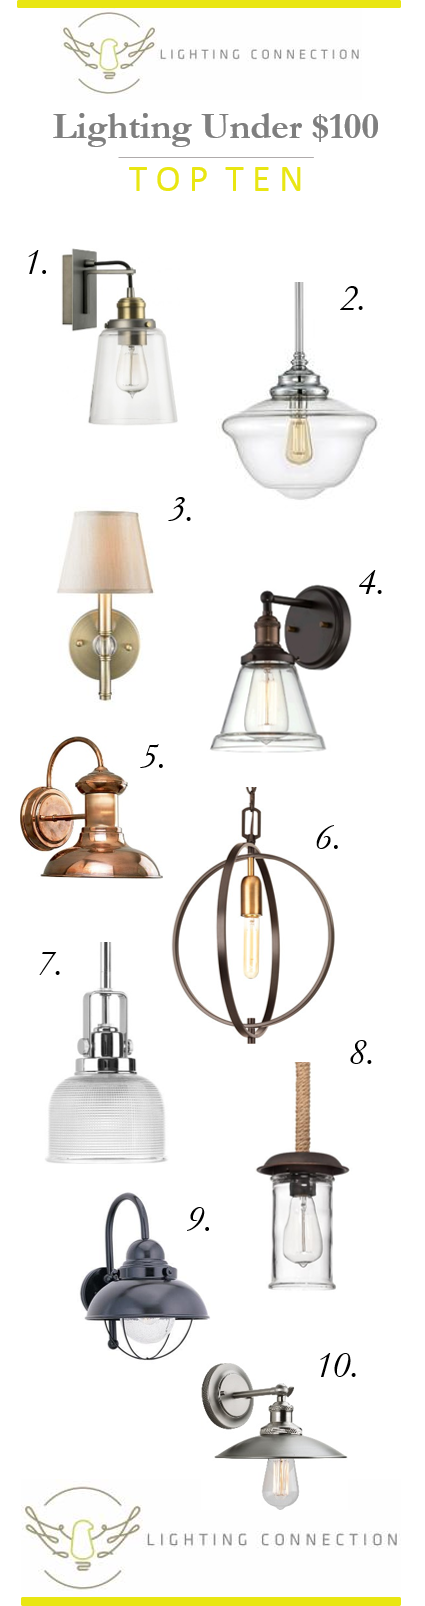 Great Lighting Shouldn T Break The Bank Connection Offers Quality Affordable And Modern Light Fixtures Products